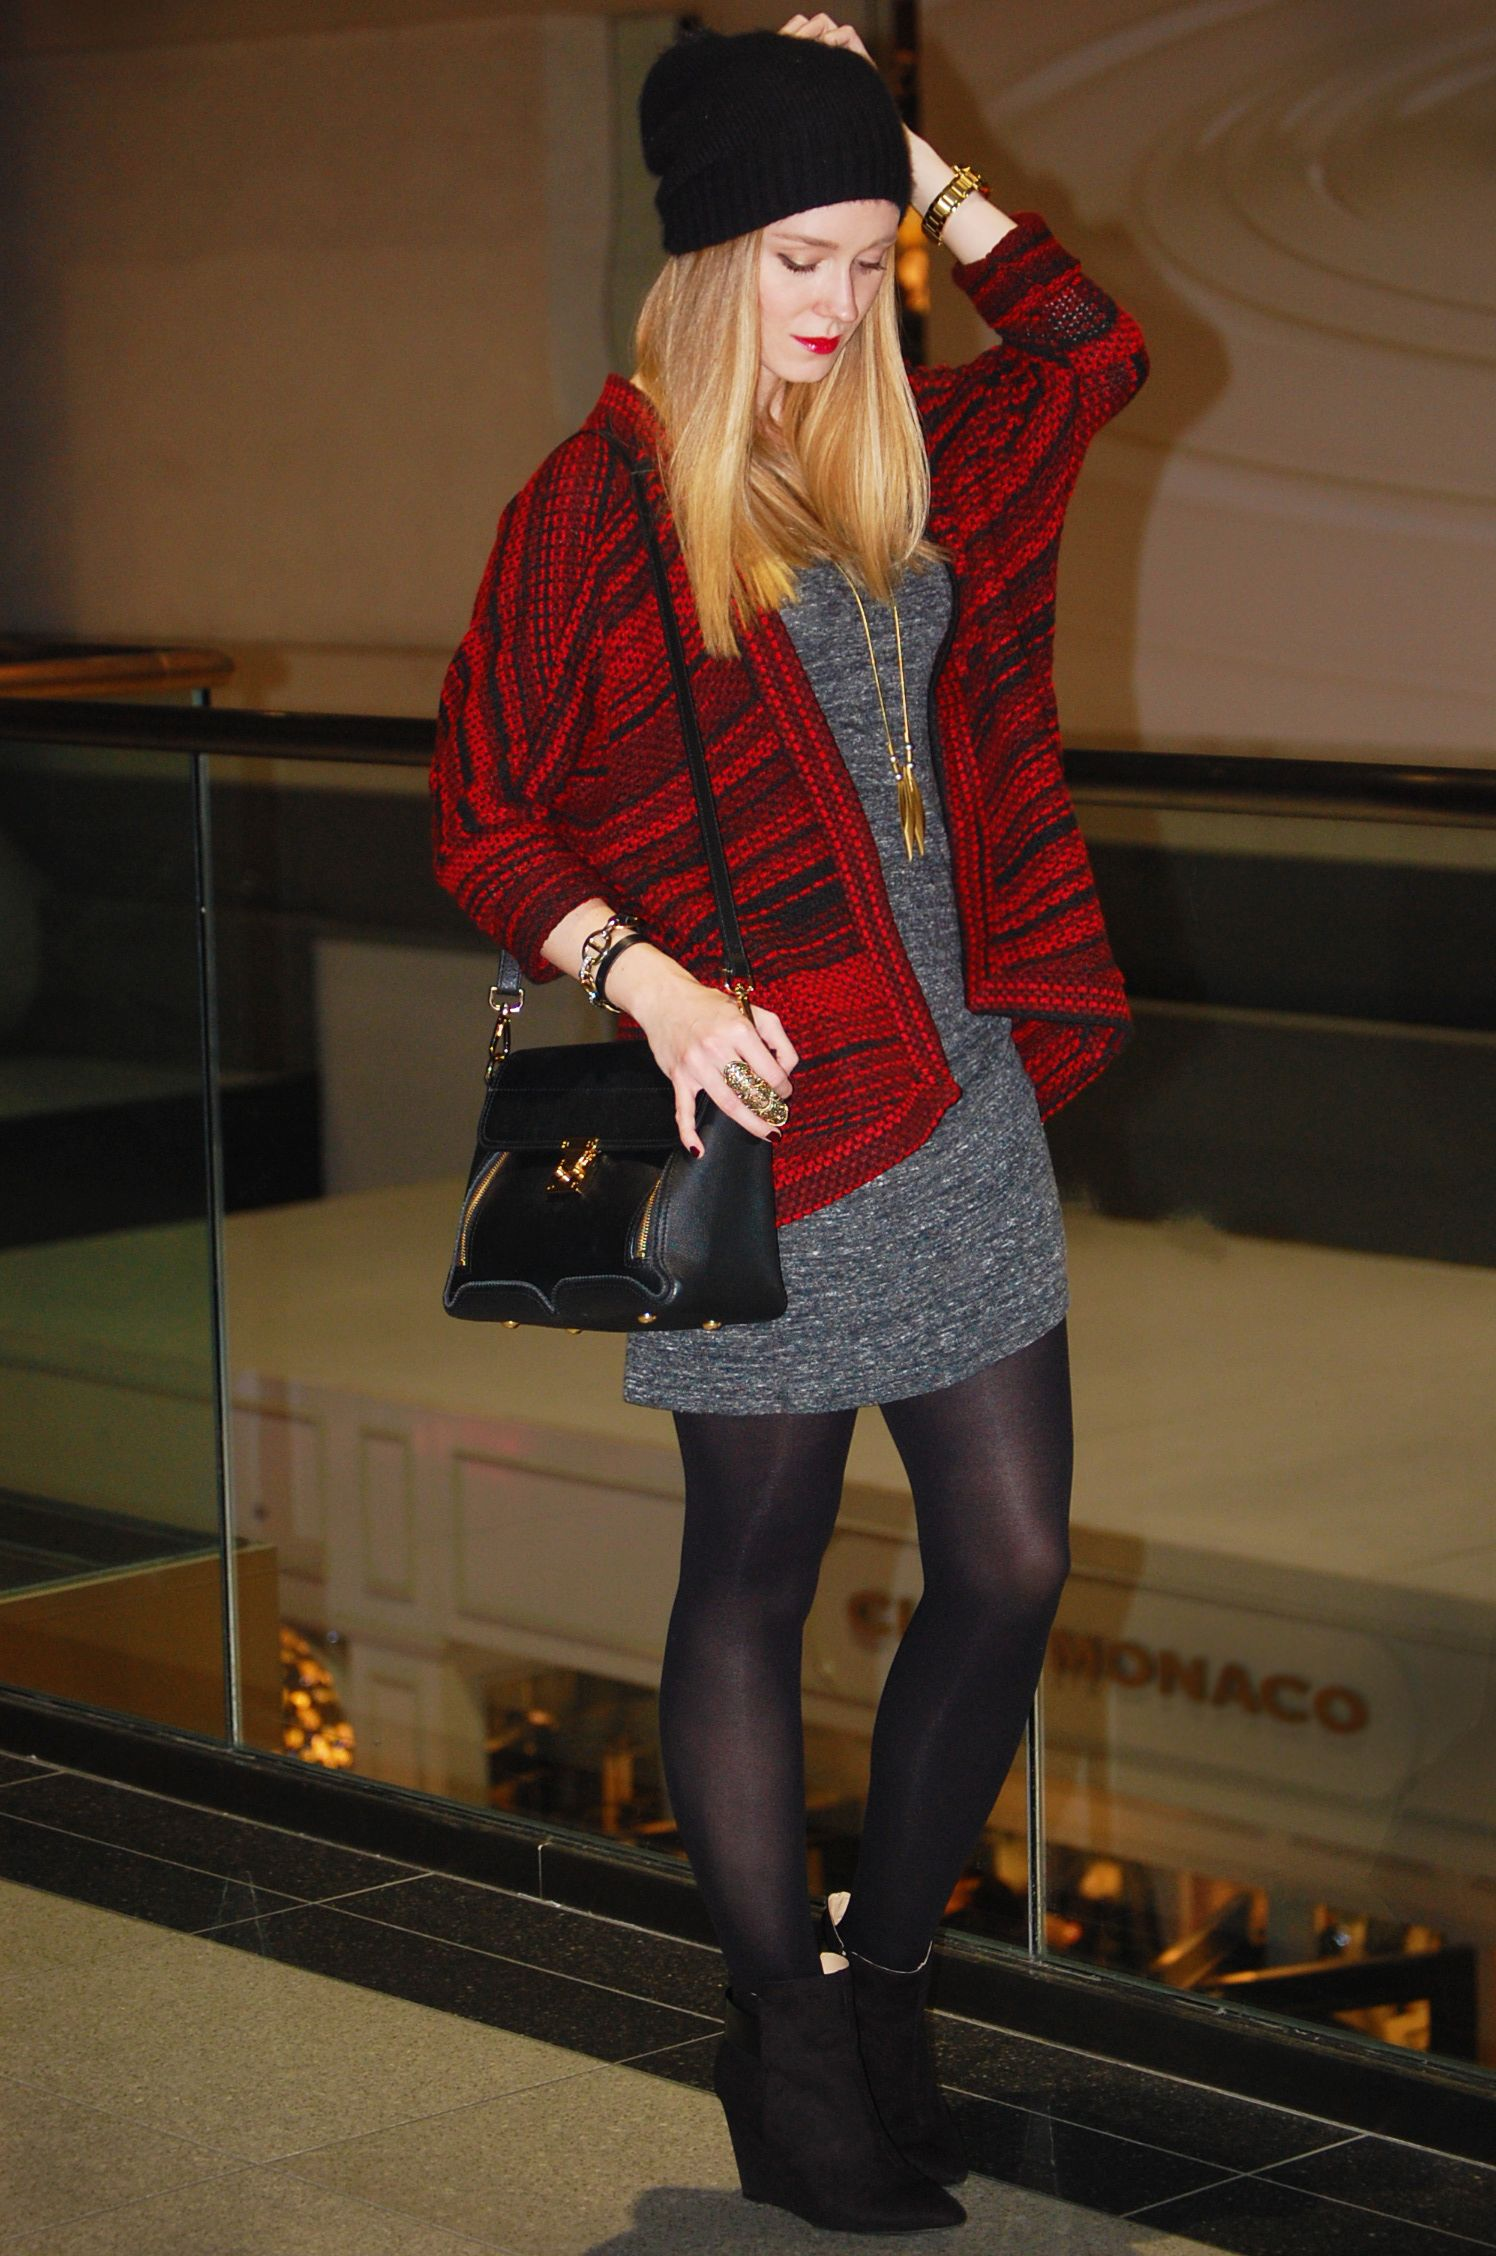 Cozy Chic Sweaters + Holiday Beauty Sweater fashion